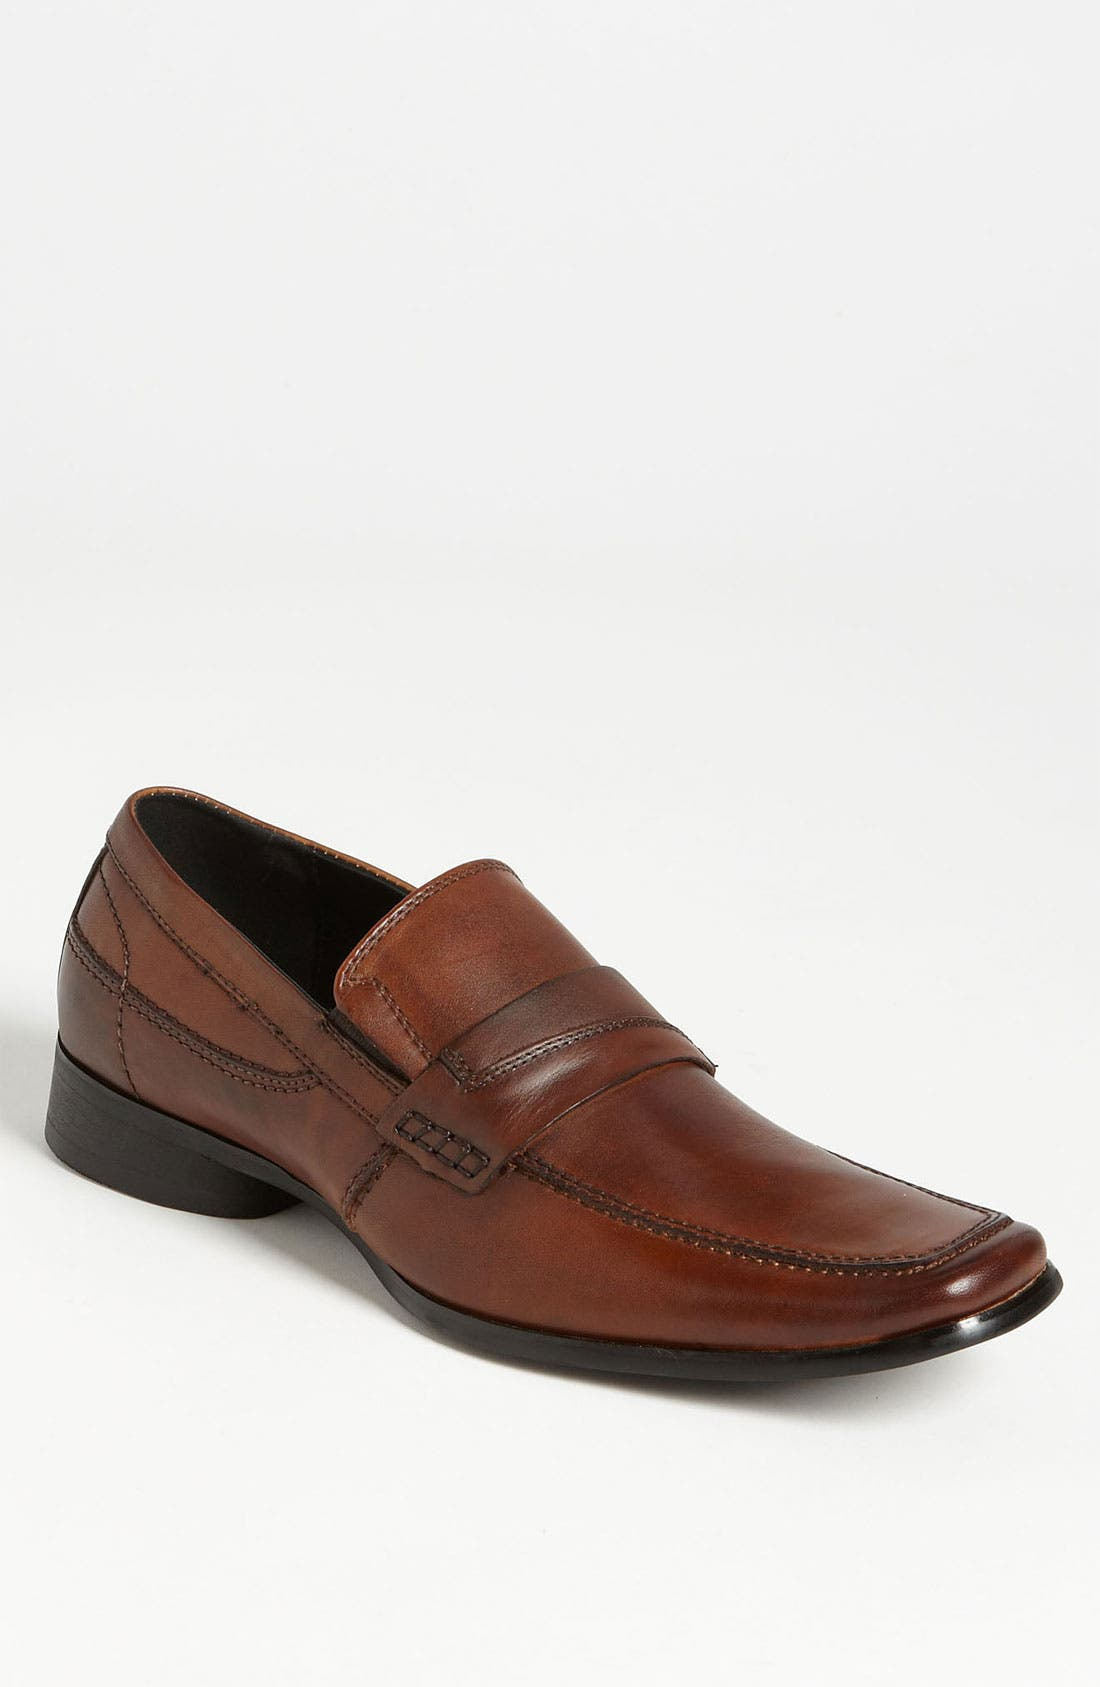 Alternate Image 1 Selected - Kenneth Cole Reaction 'The Right Note' Loafer (Online Only)